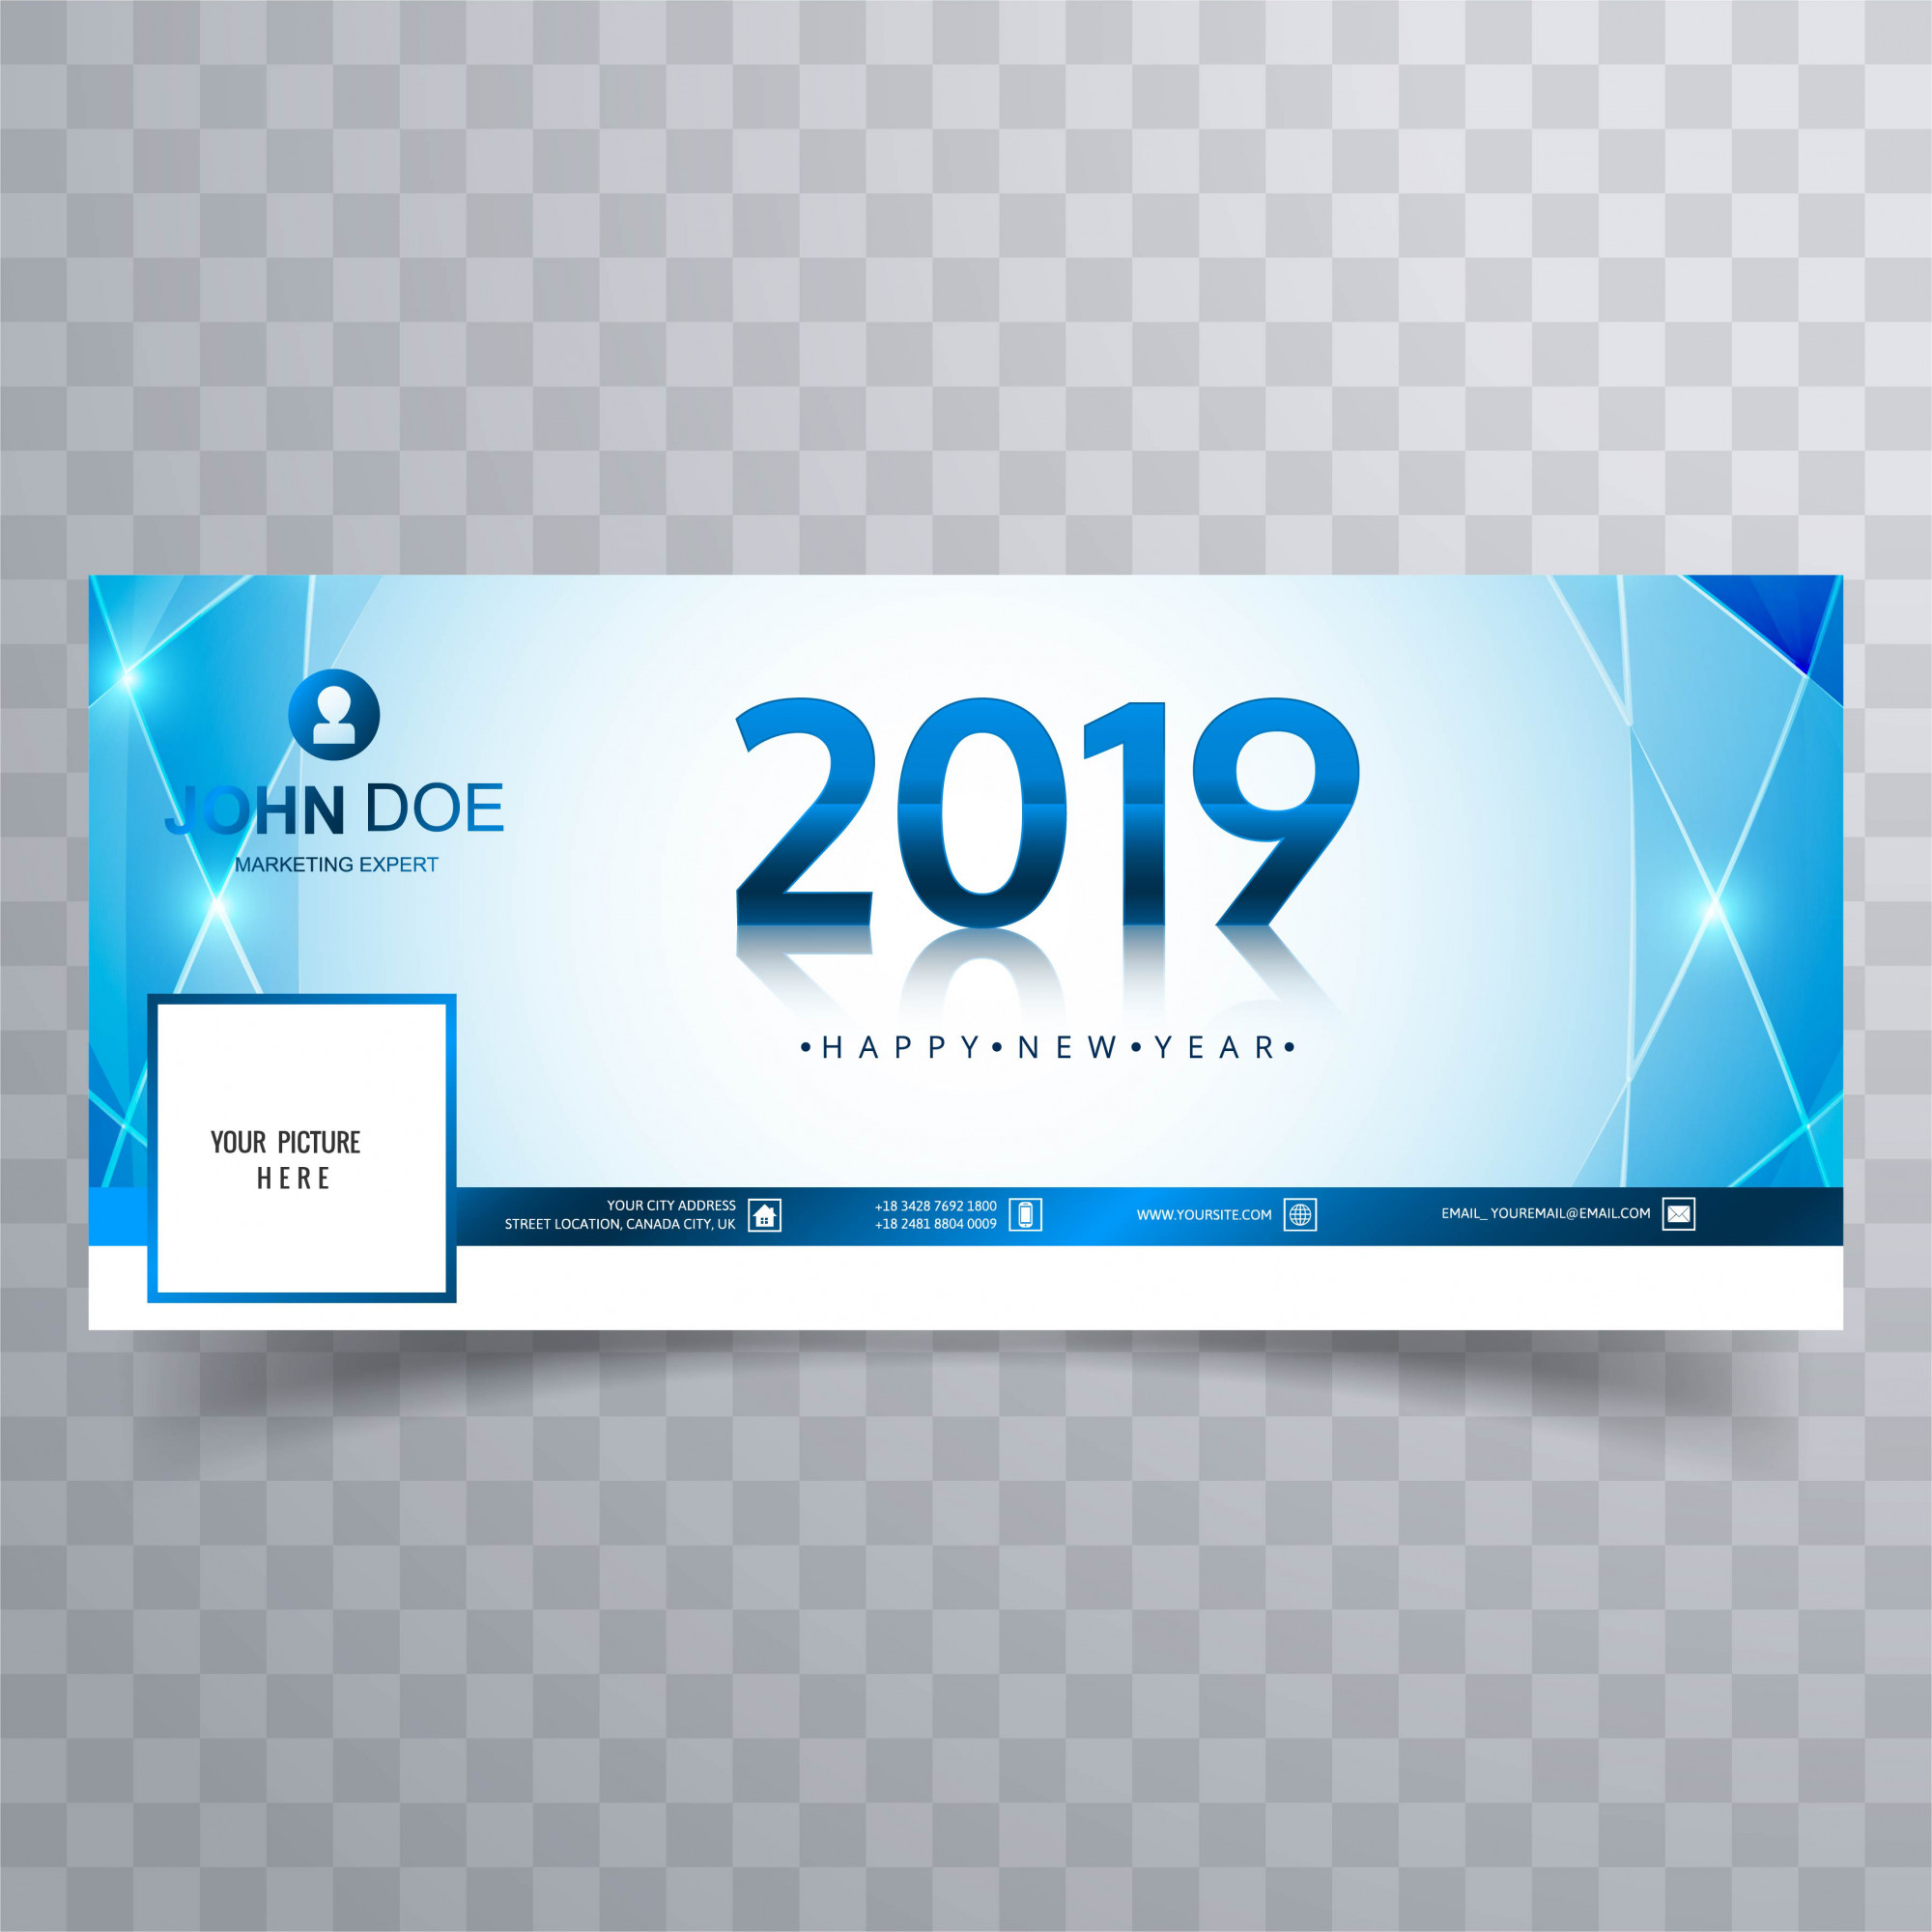 2019 new year facebook cover banner template design